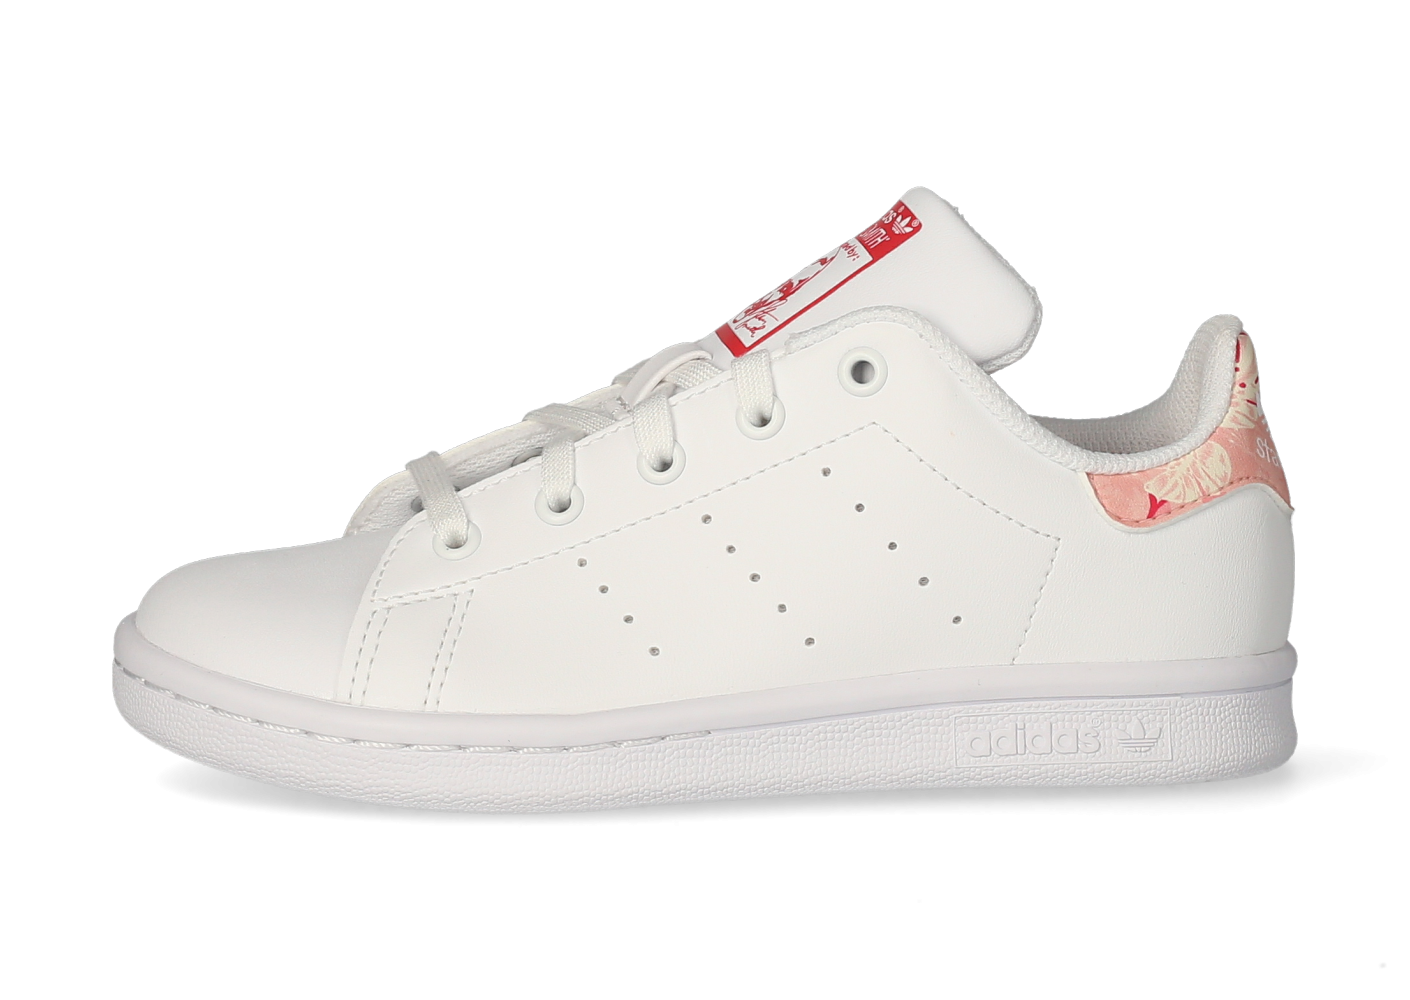 All about Adidas Stan Smith